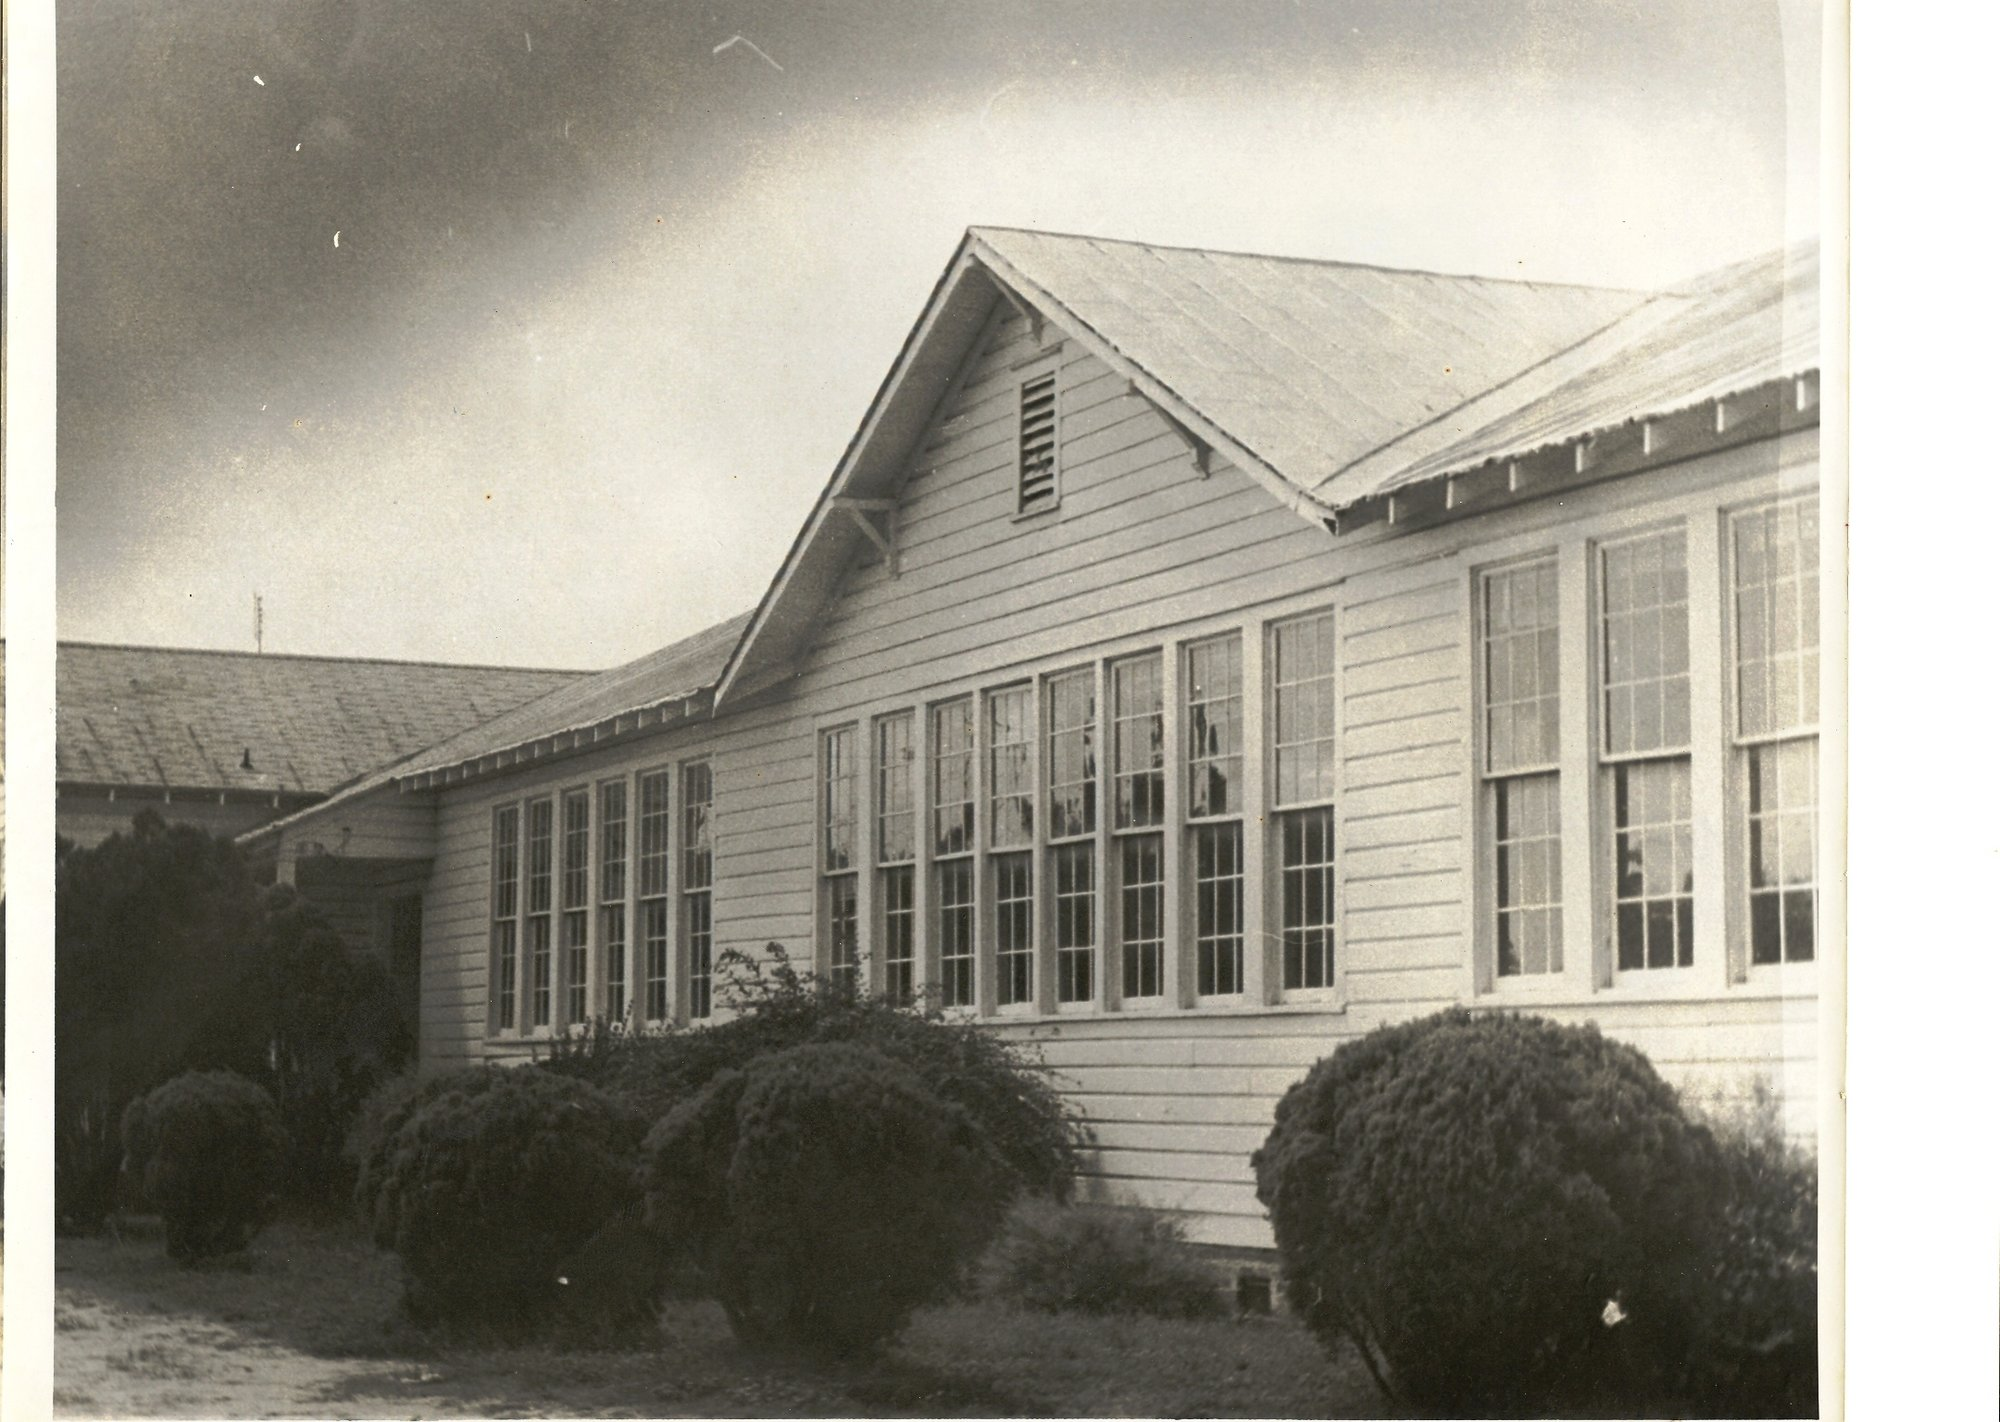 Stone Hill Elementary School served the African-American community in Shannontown beginning in 1920.